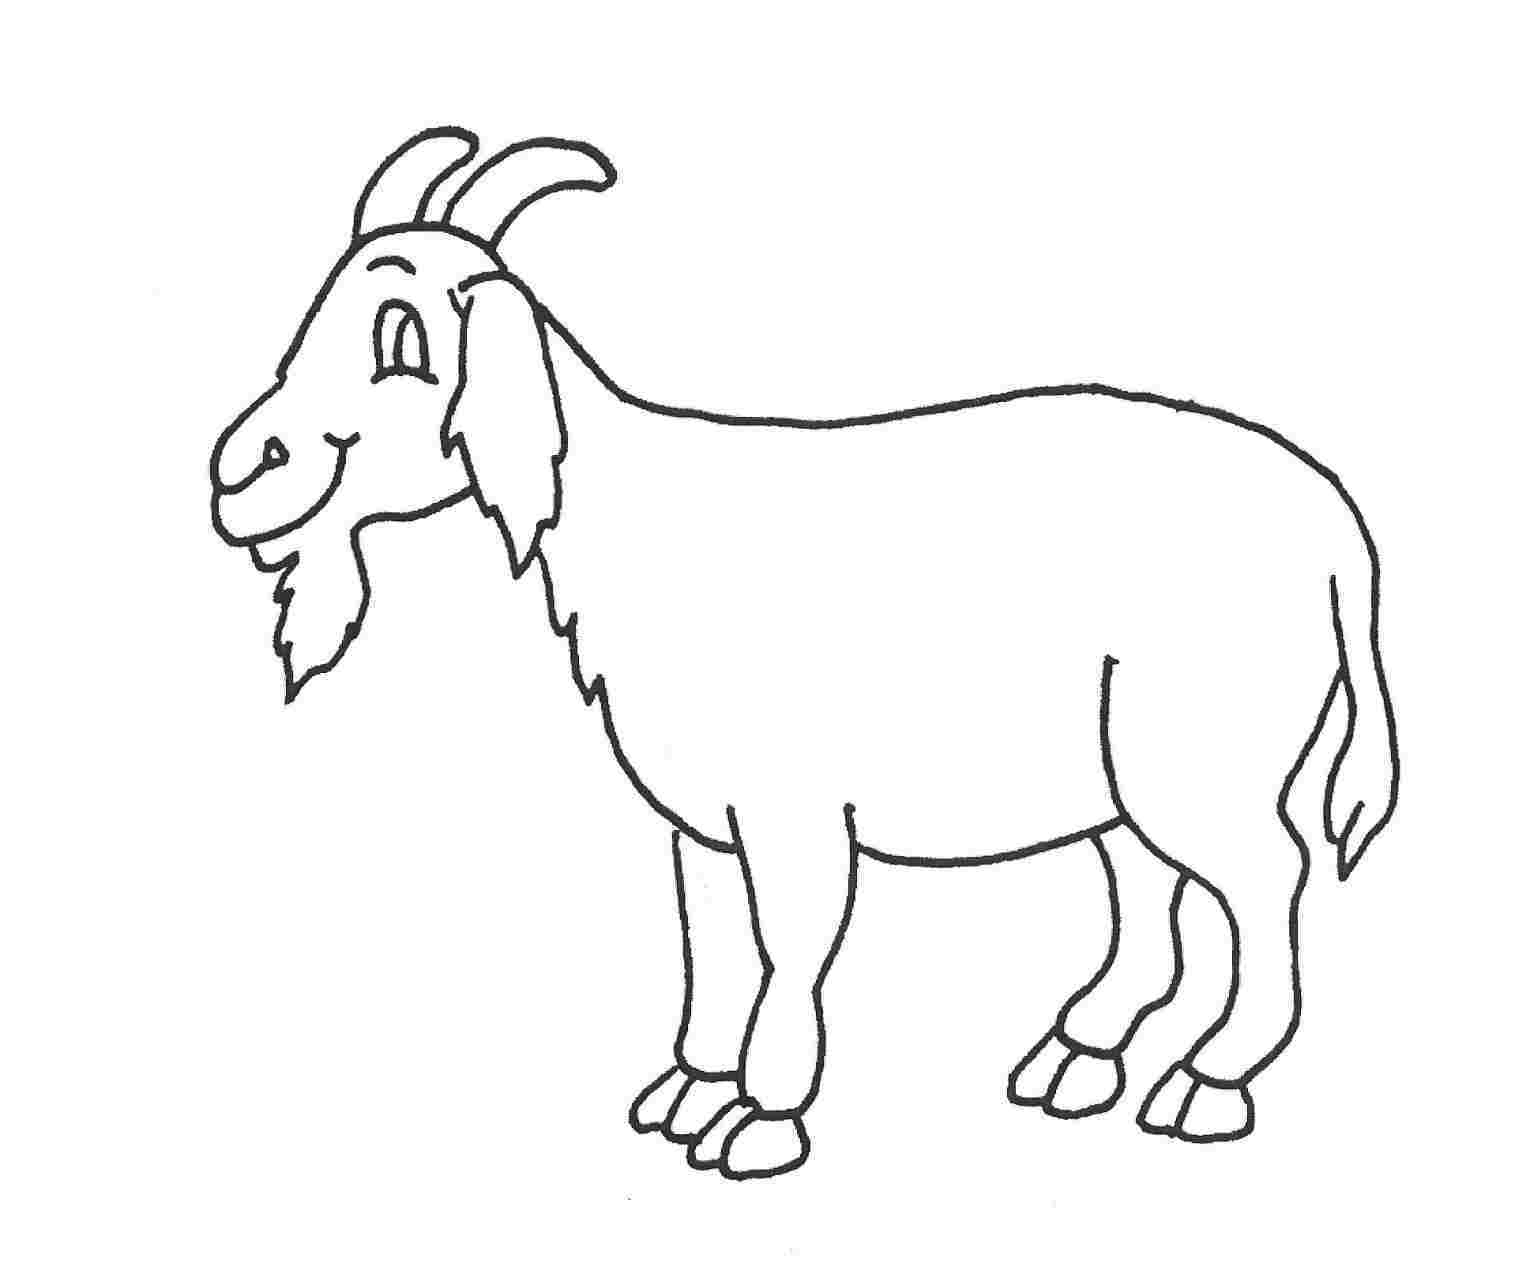 Black and white clipart images of goat picture freeuse Clipart goat black and white 6 » Clipart Portal picture freeuse